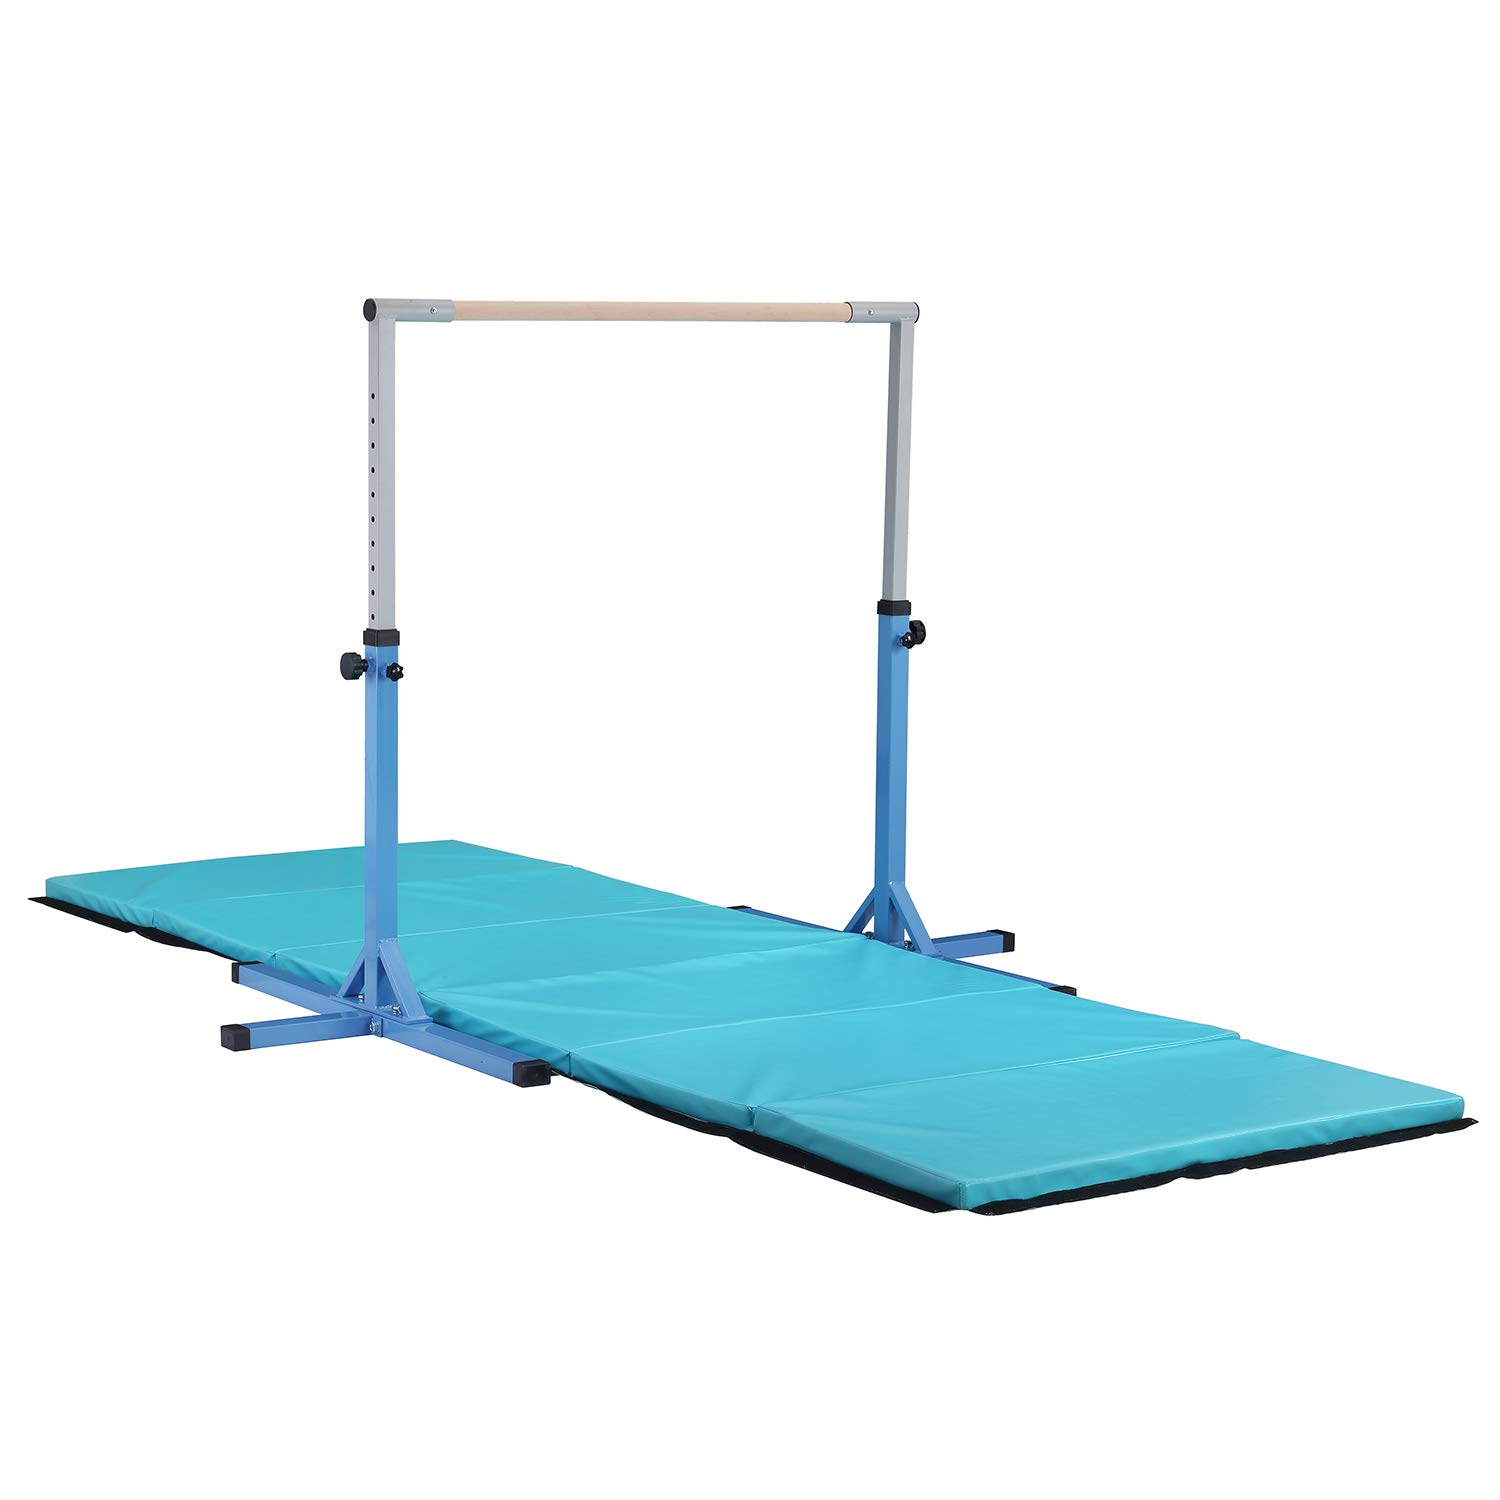 LEISURELIFE Adjustable Height Kip Bar-Fitness Gymnastics Training Horizontal Bar Blue for Boys by LEISURELIFE (Image #4)